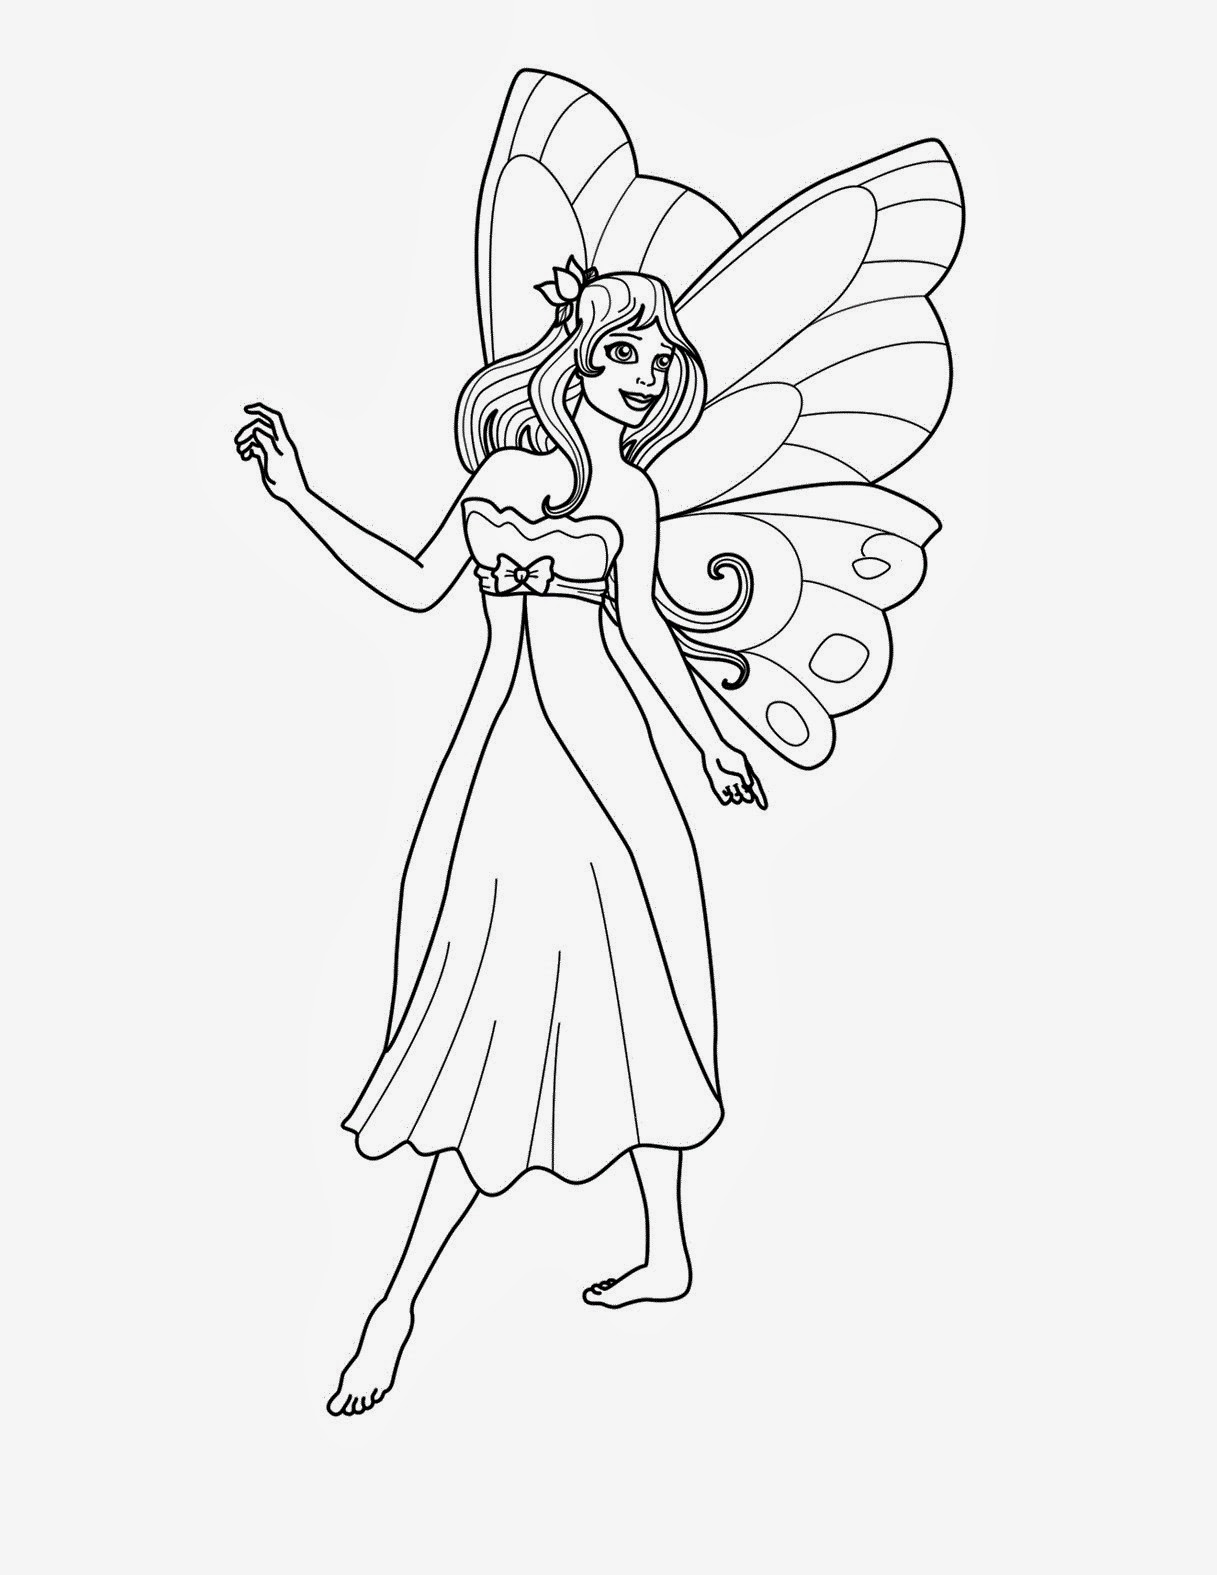 printable gothic fairy coloring pages gothic fairy coloring pages coloringrocks! coloring pages printable gothic fairy